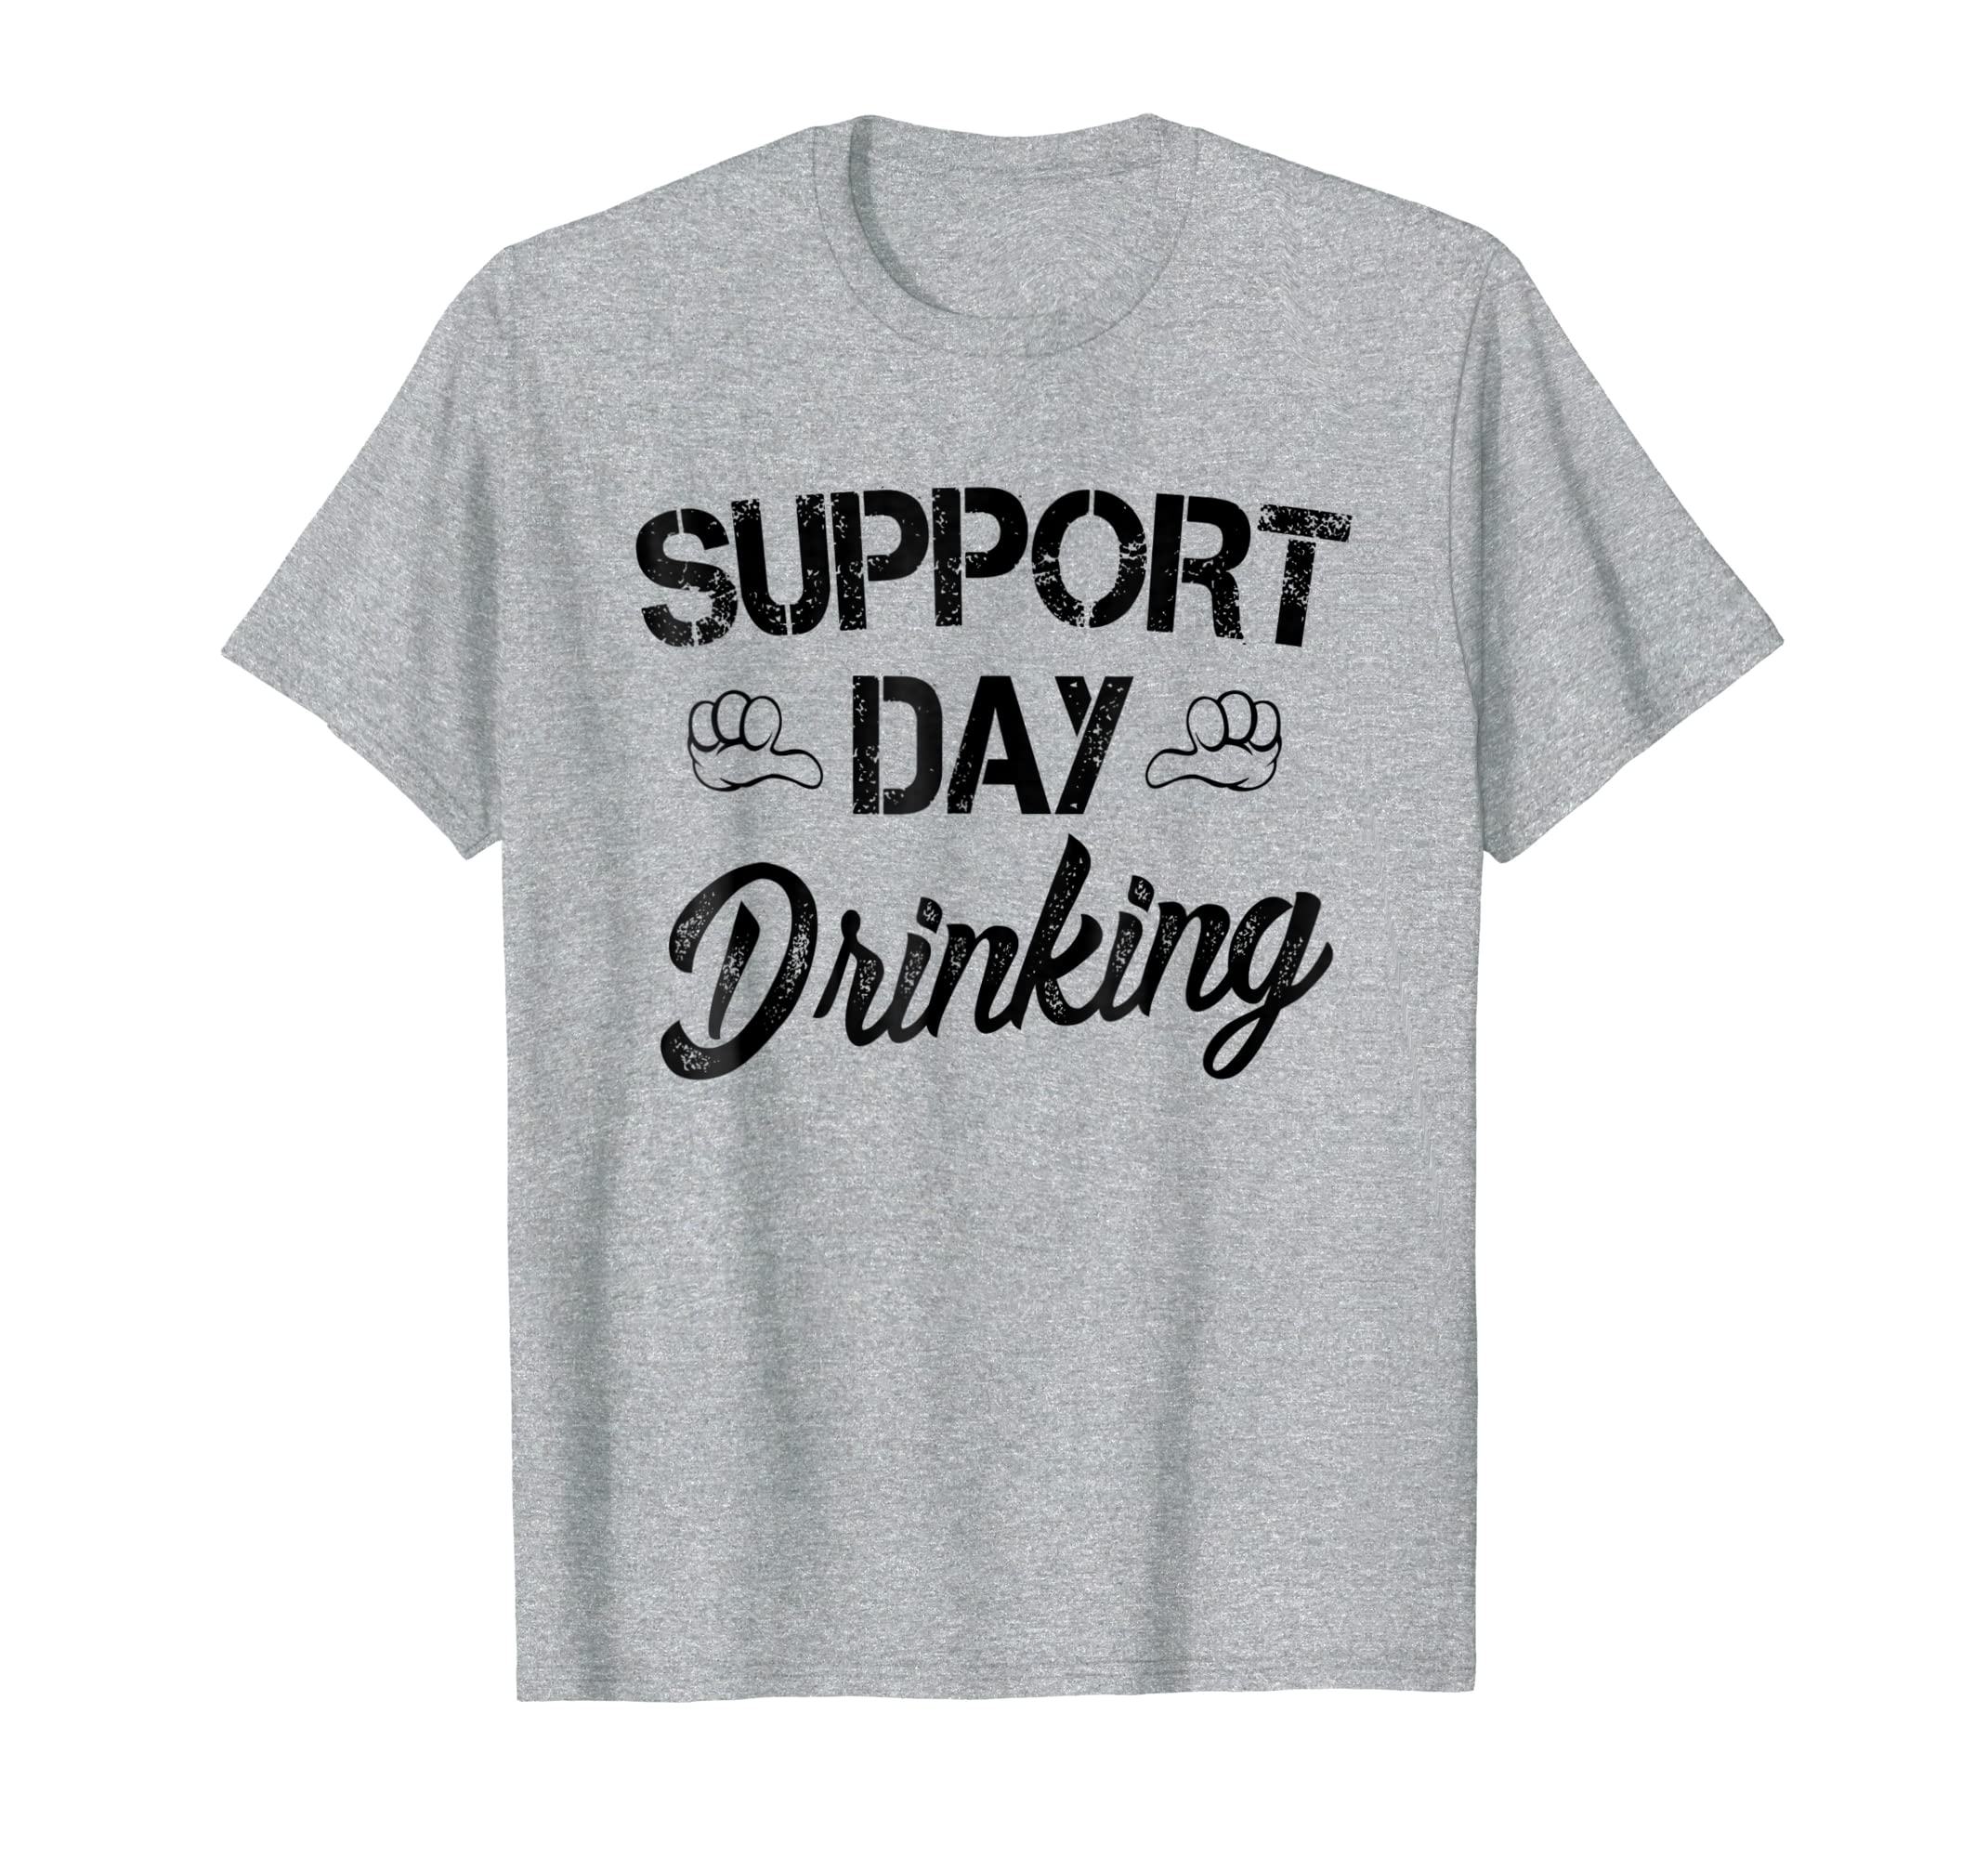 Amazon Brewers Shirts Apparel Craft Brewery Work Tee Clothing